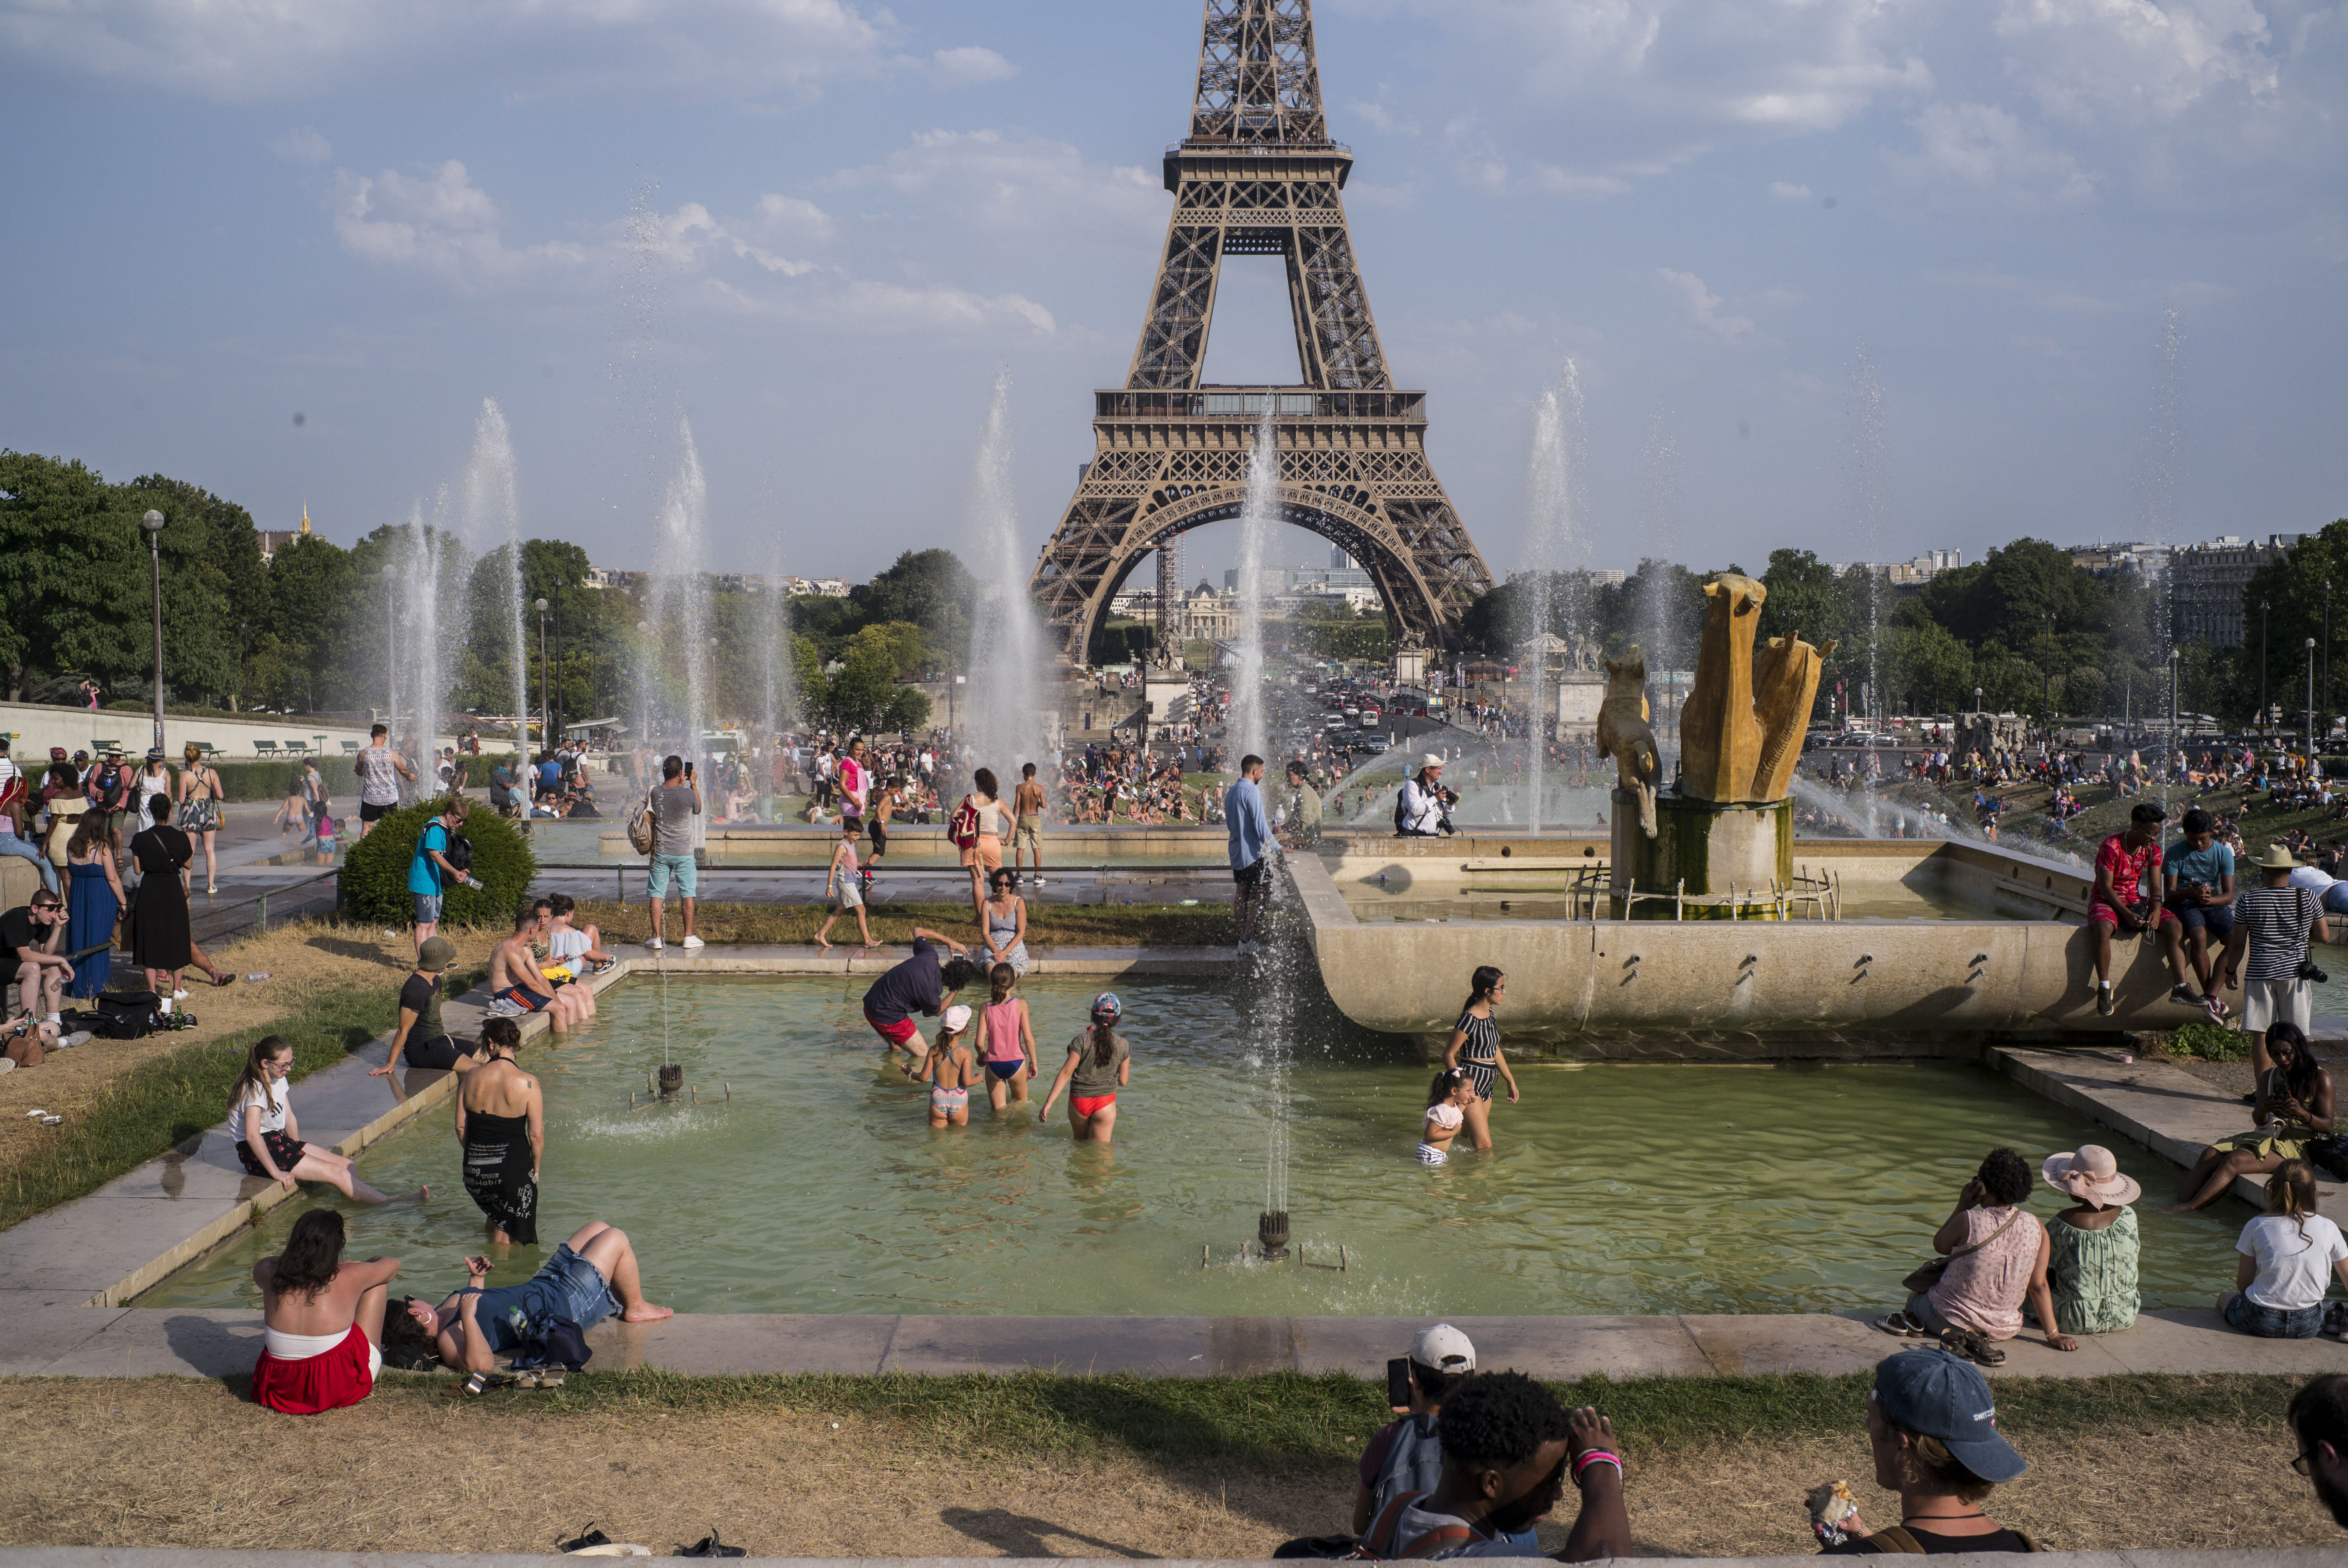 European heat wave fueled by human-induced climate change, study finds